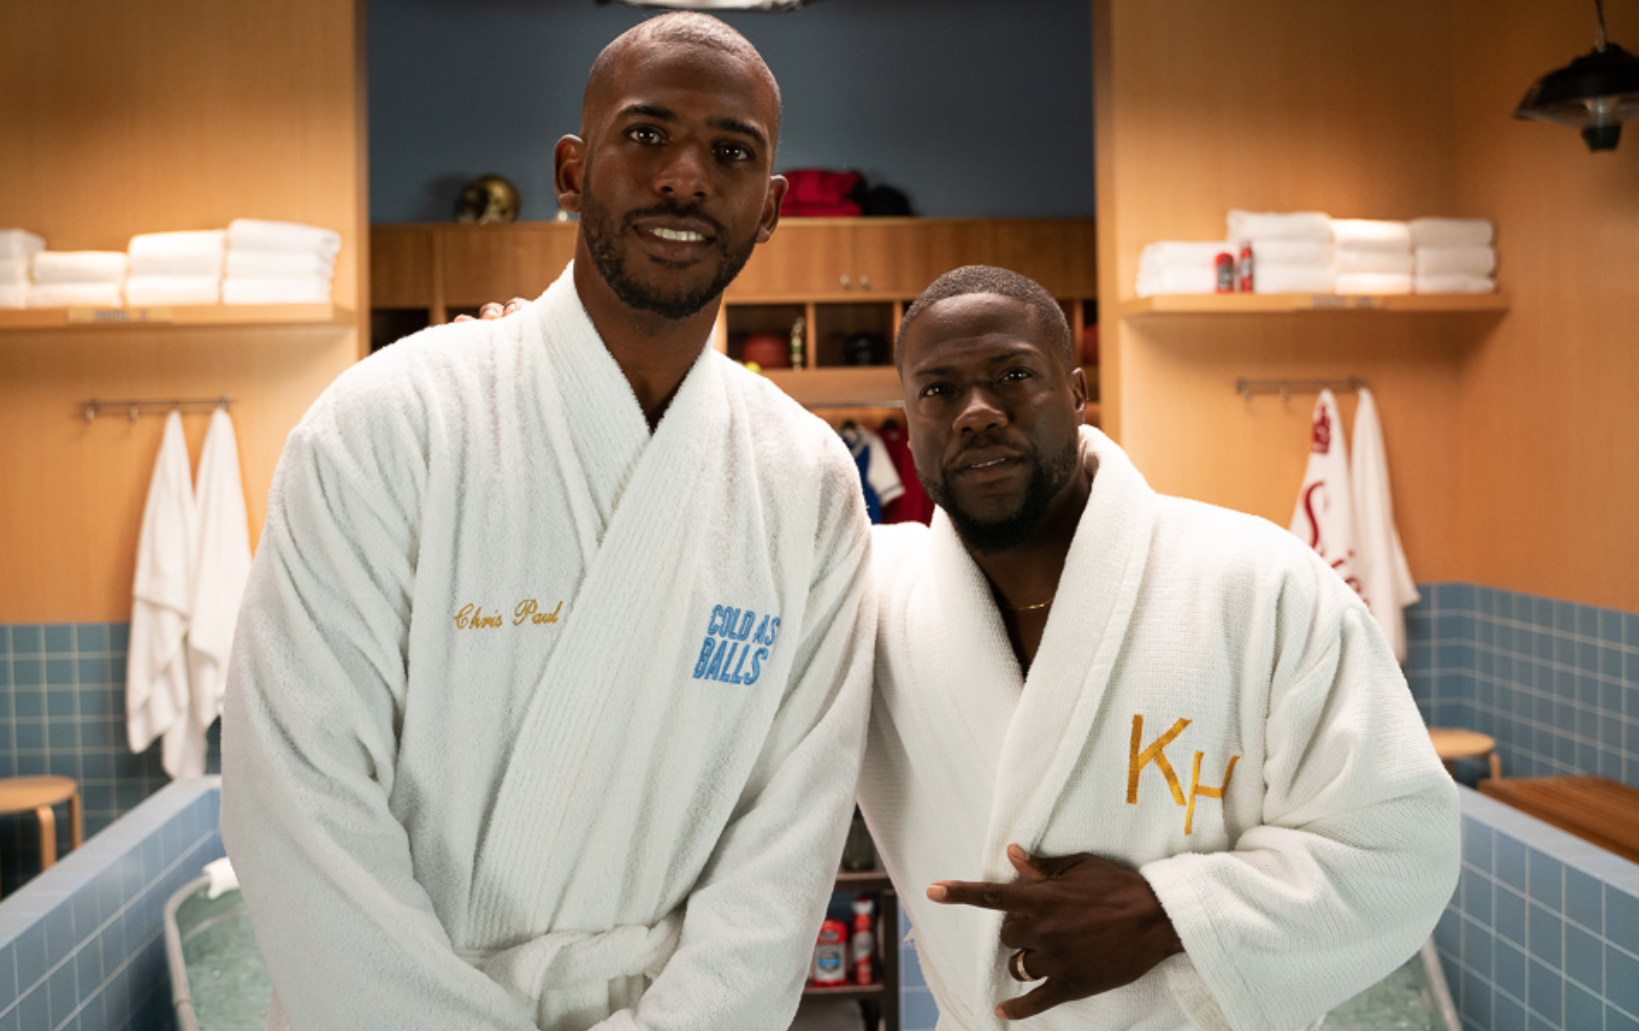 Kevin Hart's Cold As Balls returns for Season 3, guests include Chris Paul, Erin Andrews, Mark Cuban, Ninja Kevin Hart interviews sports stars in ice tubs again for Season 3 of Cold As Balls - Awful Announcing